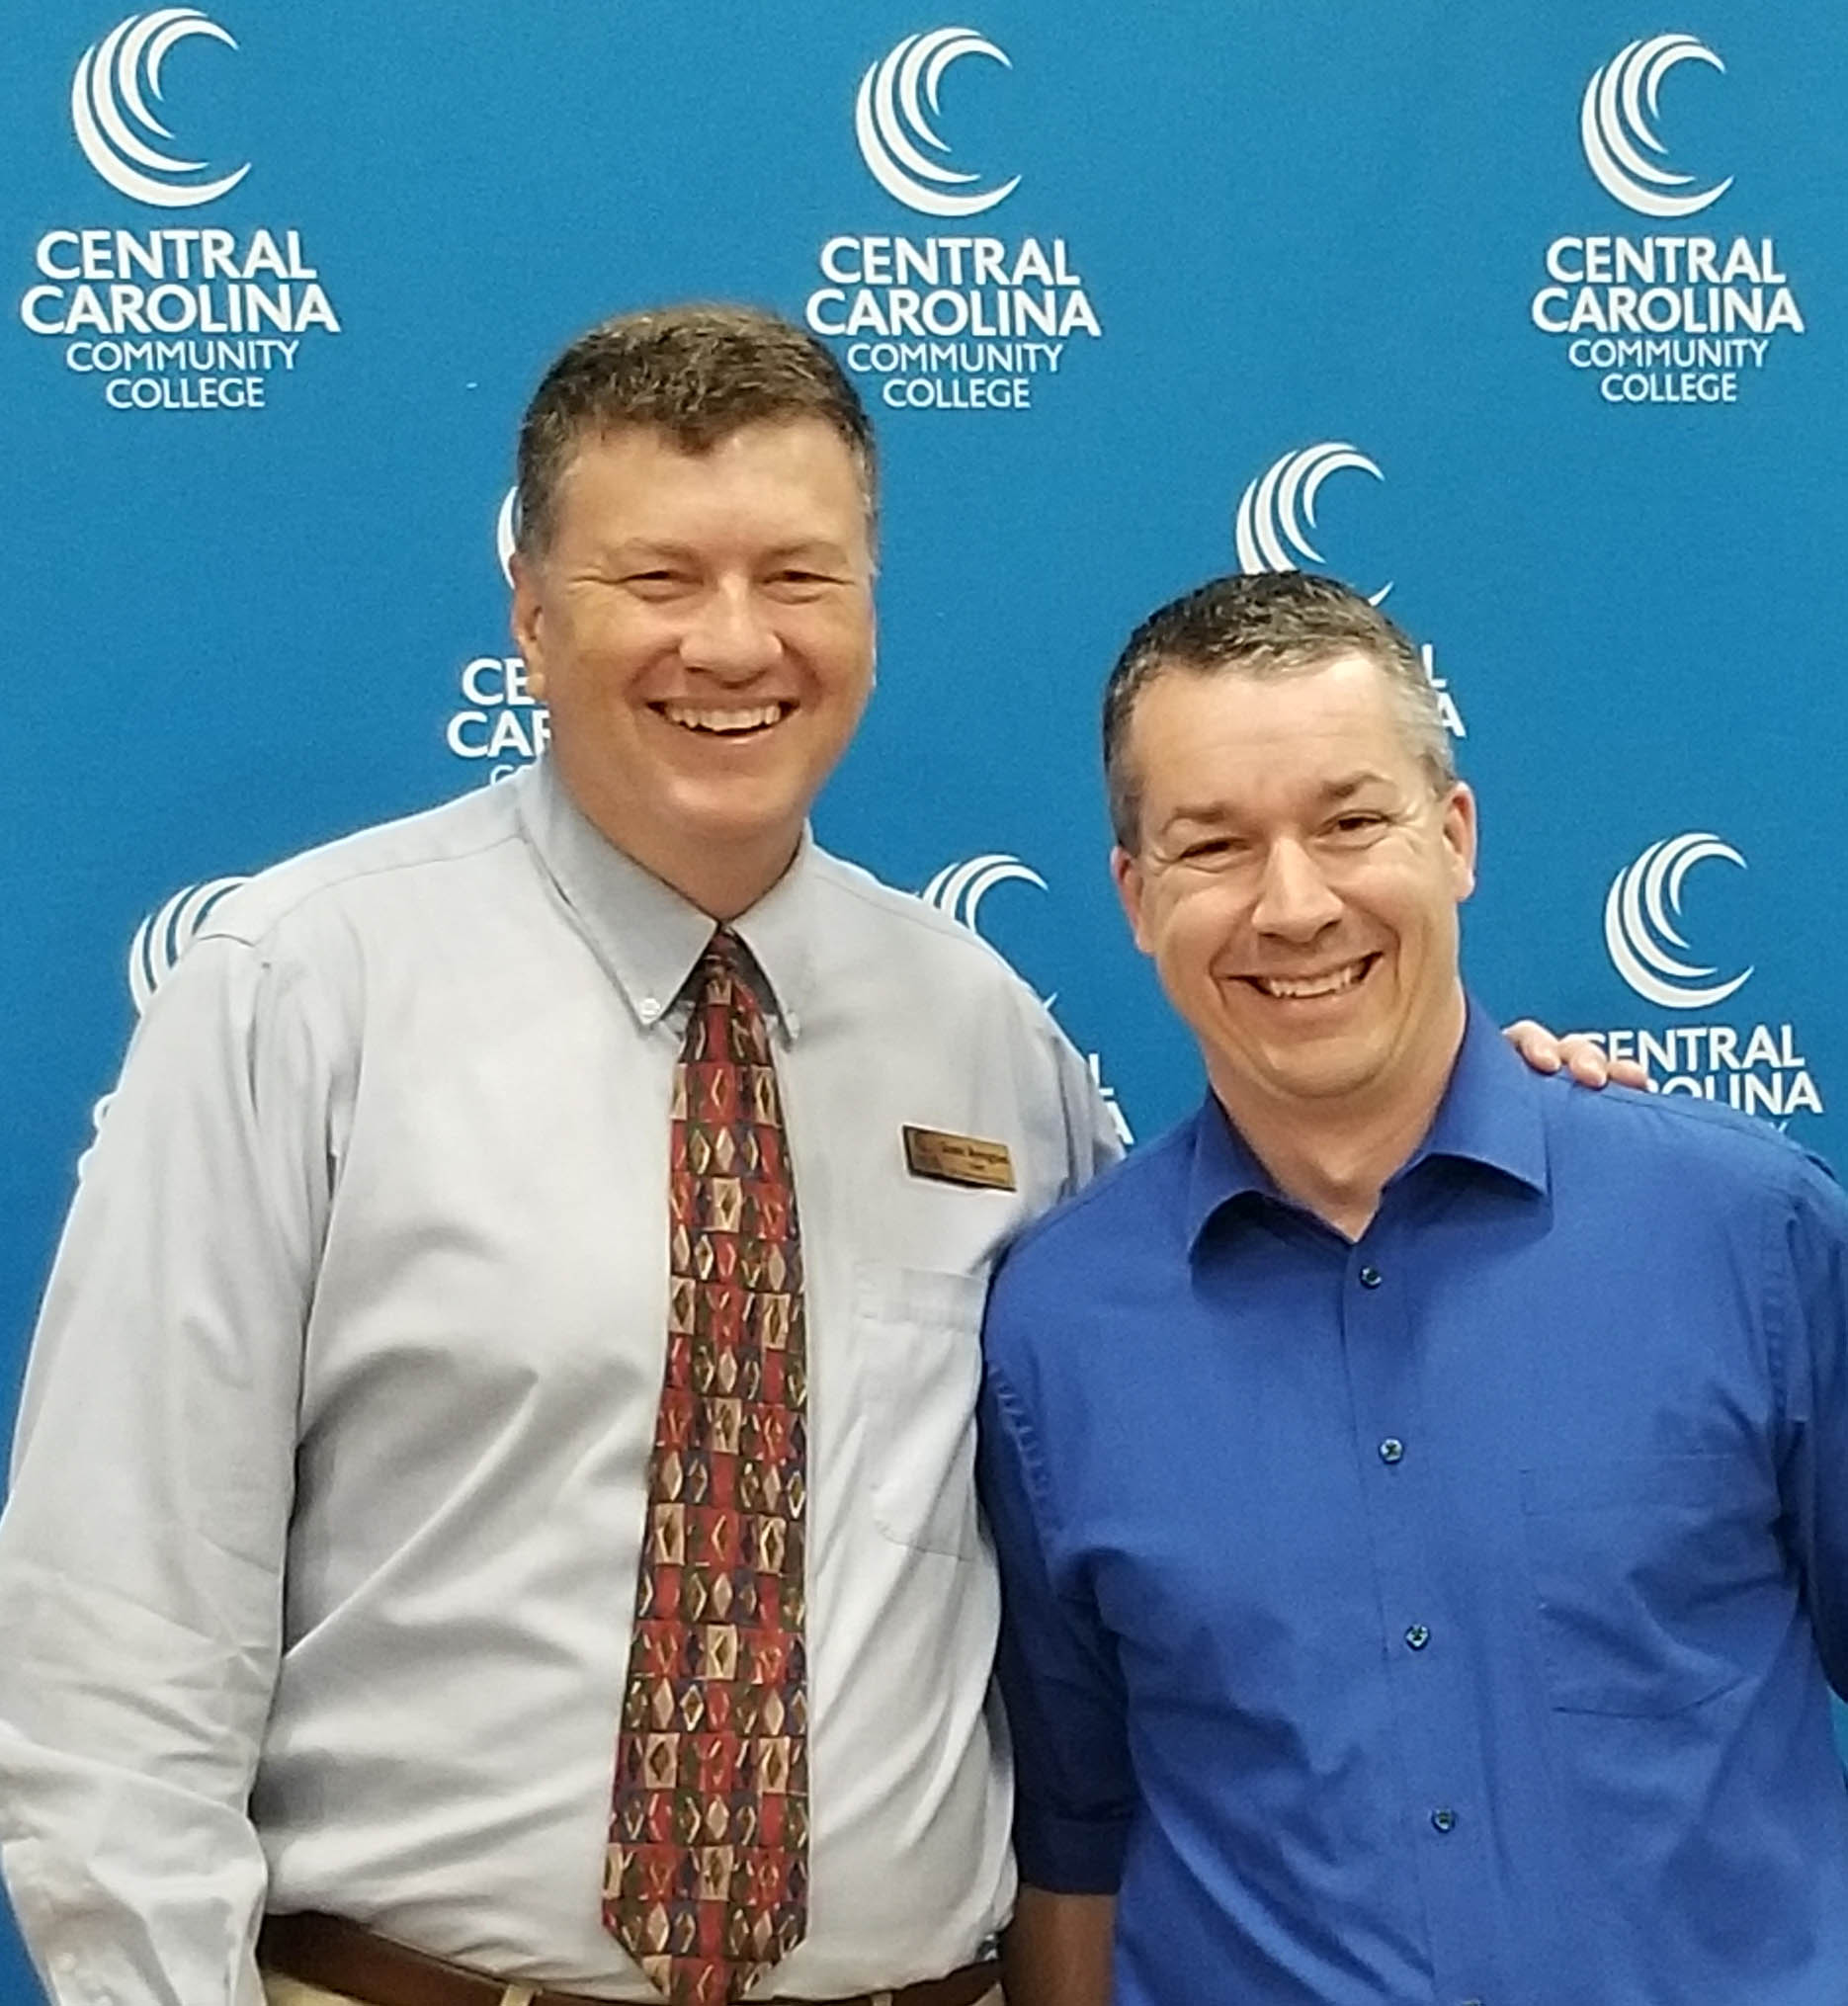 Click to enlarge,  Ty Stumpf (right) has been named Central Carolina Community College Advisor of the Year. He is pictured with Scott Byington, CCCC Dean of Arts, Sciences & Advising. Stumpf has been an advisor in the Associate in Arts (A.A.) program since 2001 and has been the program's chair since 2009. In his capacity as chair, Stumpf trains incoming A.A. advisors, he distributes materials to them, and mentors them as needed.  In addition, Stumpf facilitates numerous welcome sessions each year for new A.A. students.   For more information on Central Carolina Community College and its programs, visit www.cccc.edu.